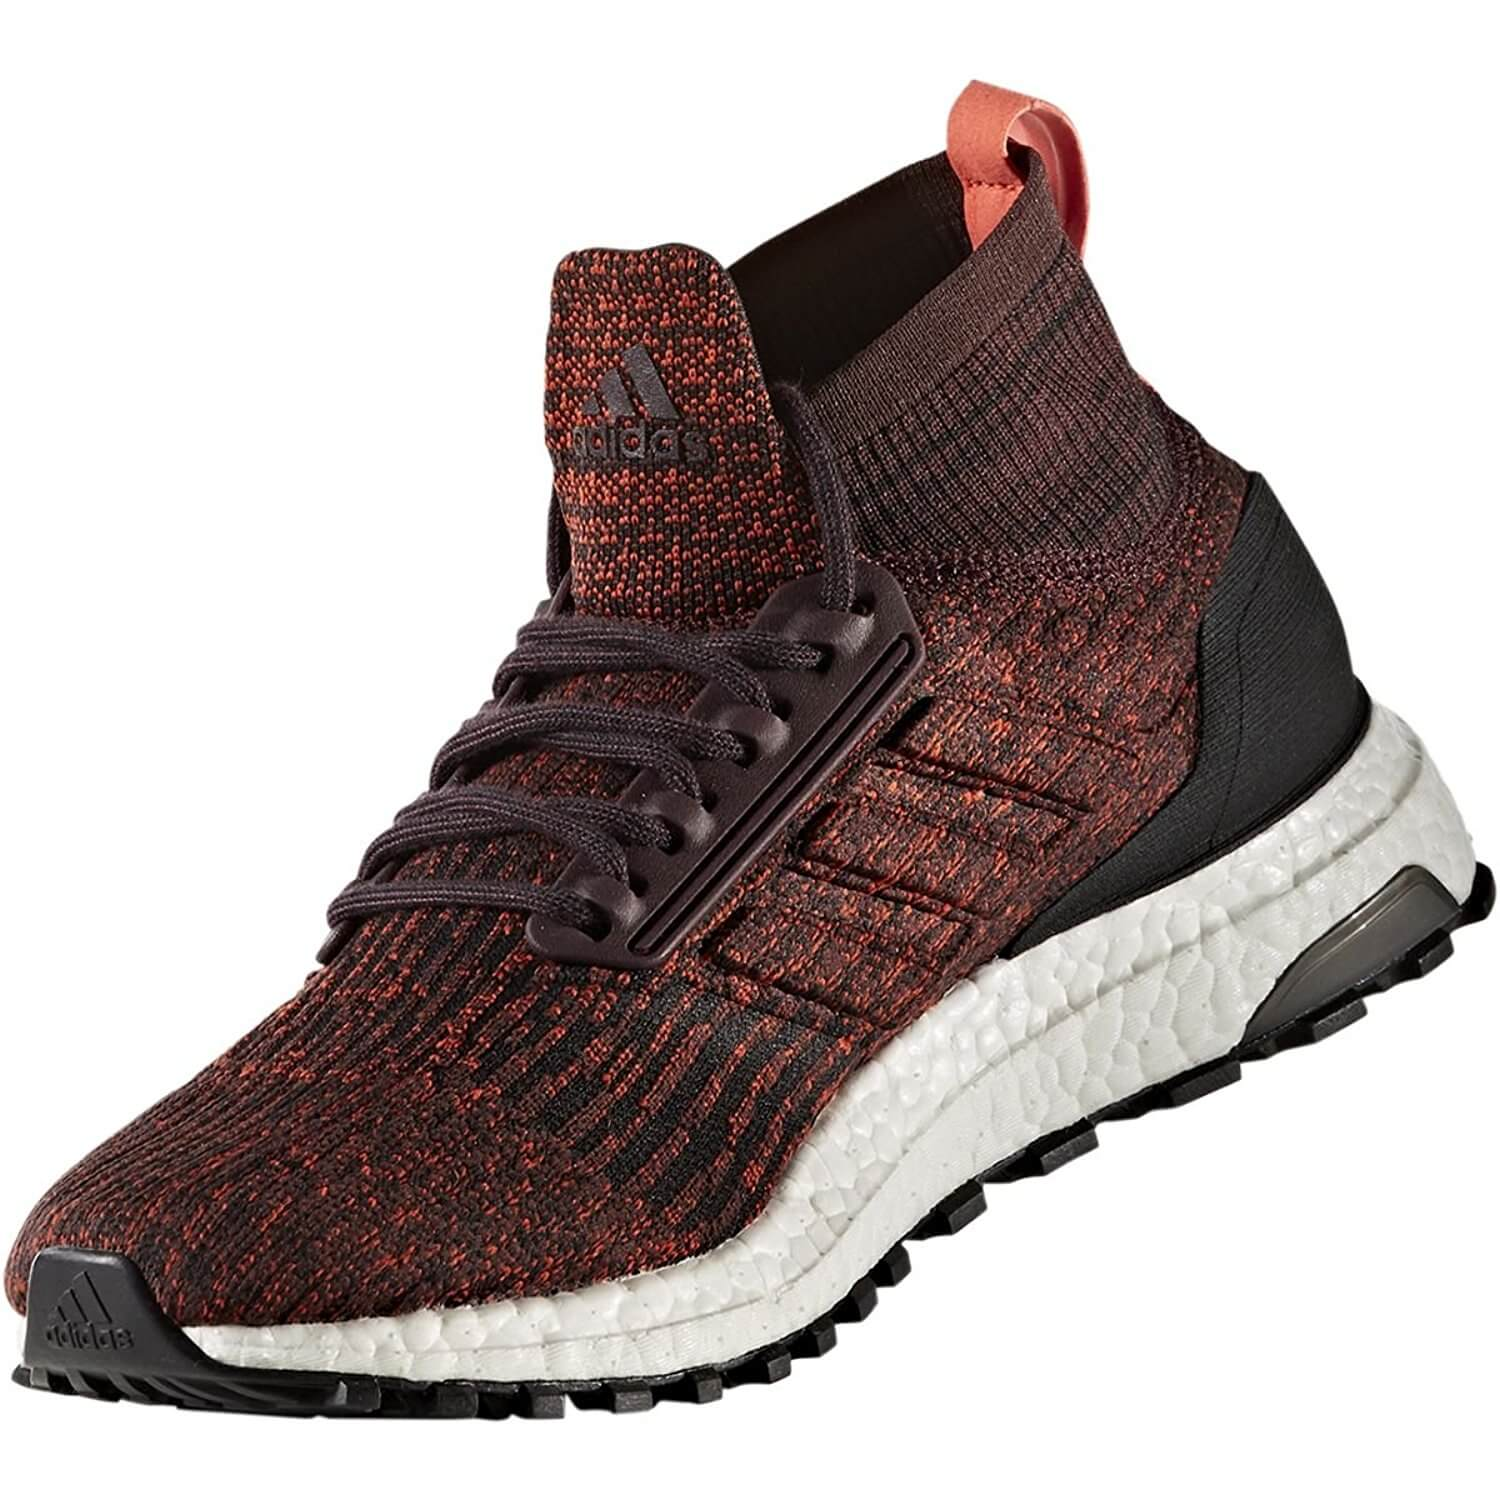 55c3a626449d7 Adidas Ultraboost All Terrain - Buy or Not in May 2019